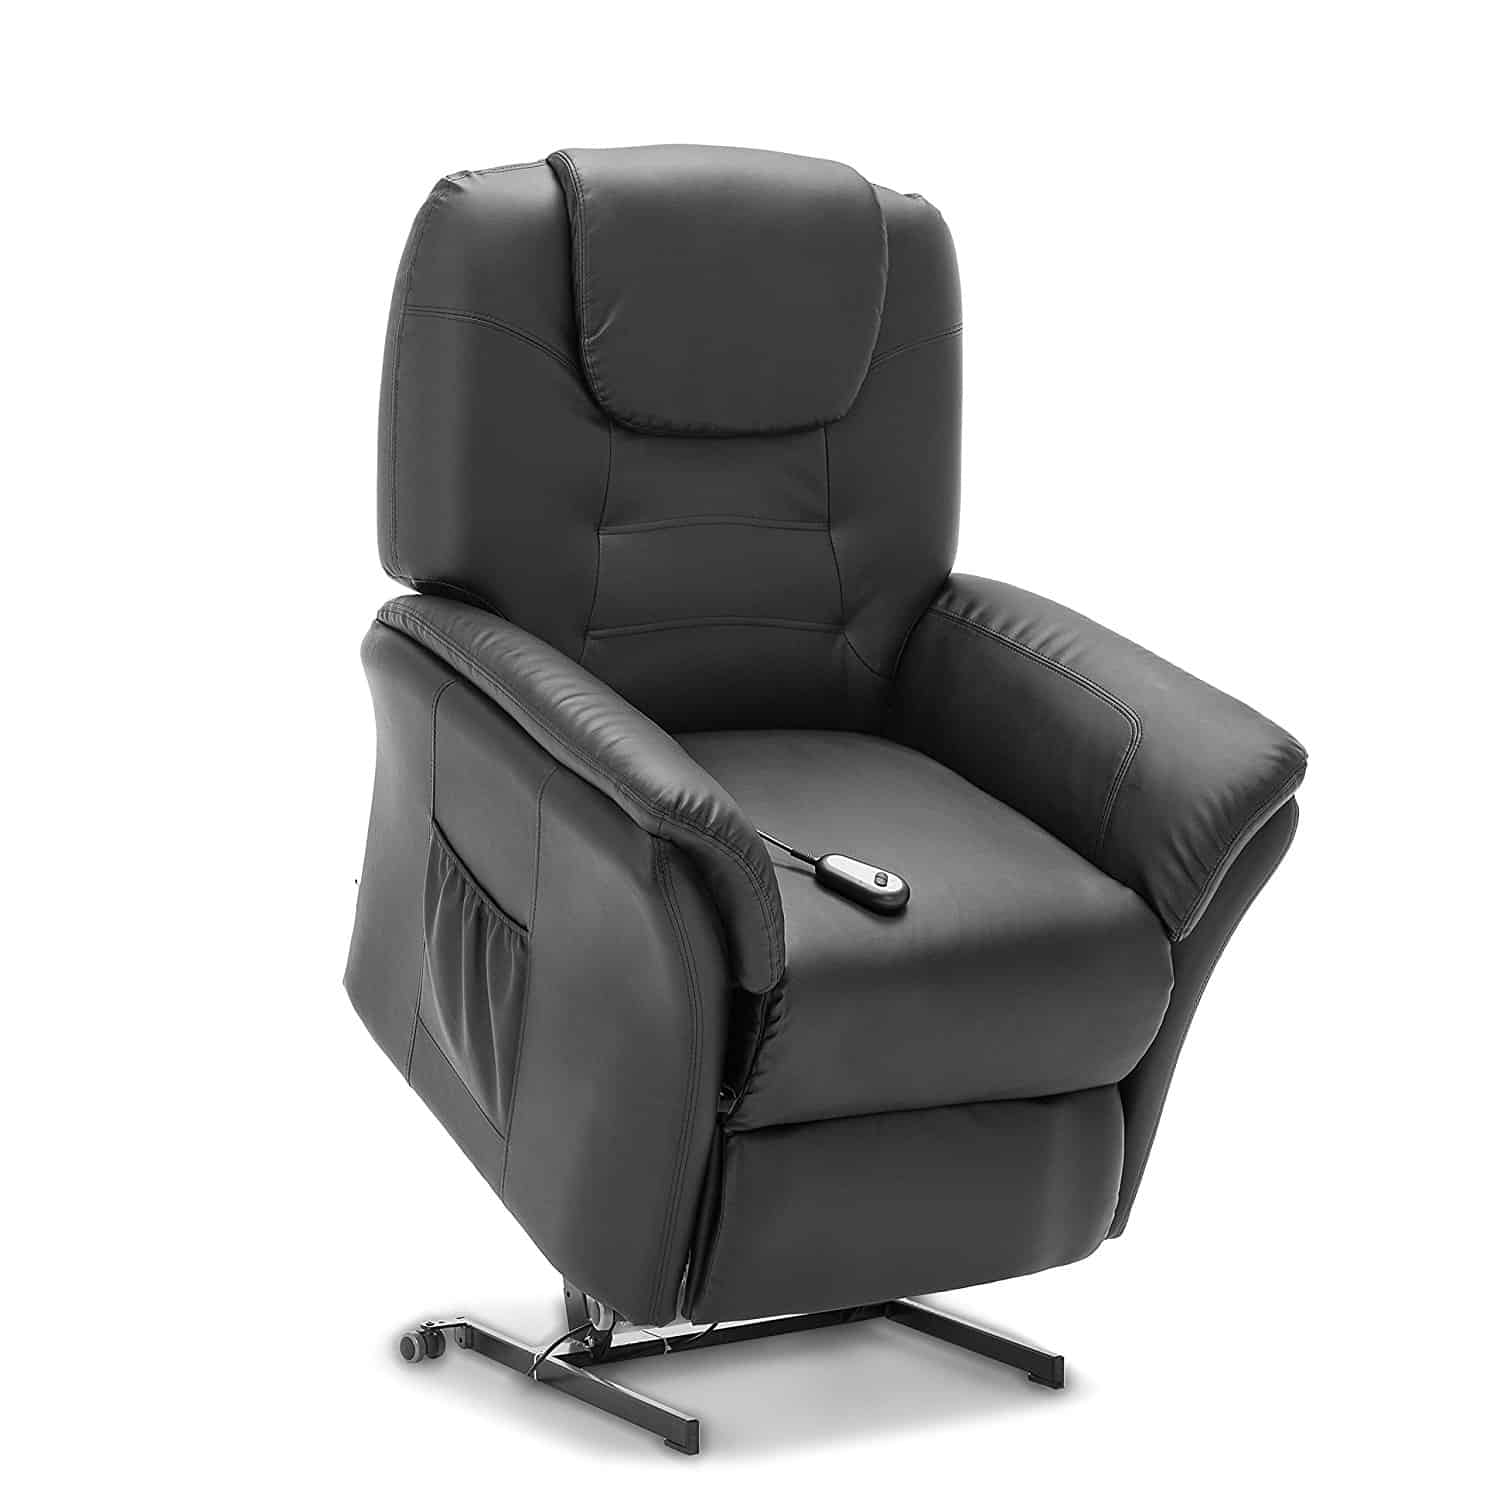 WINDSOR ELECTRIC RISE RECLINER BONDED LEATHER ARMCHAIR SOFA HOME LOUNGE CHAIR